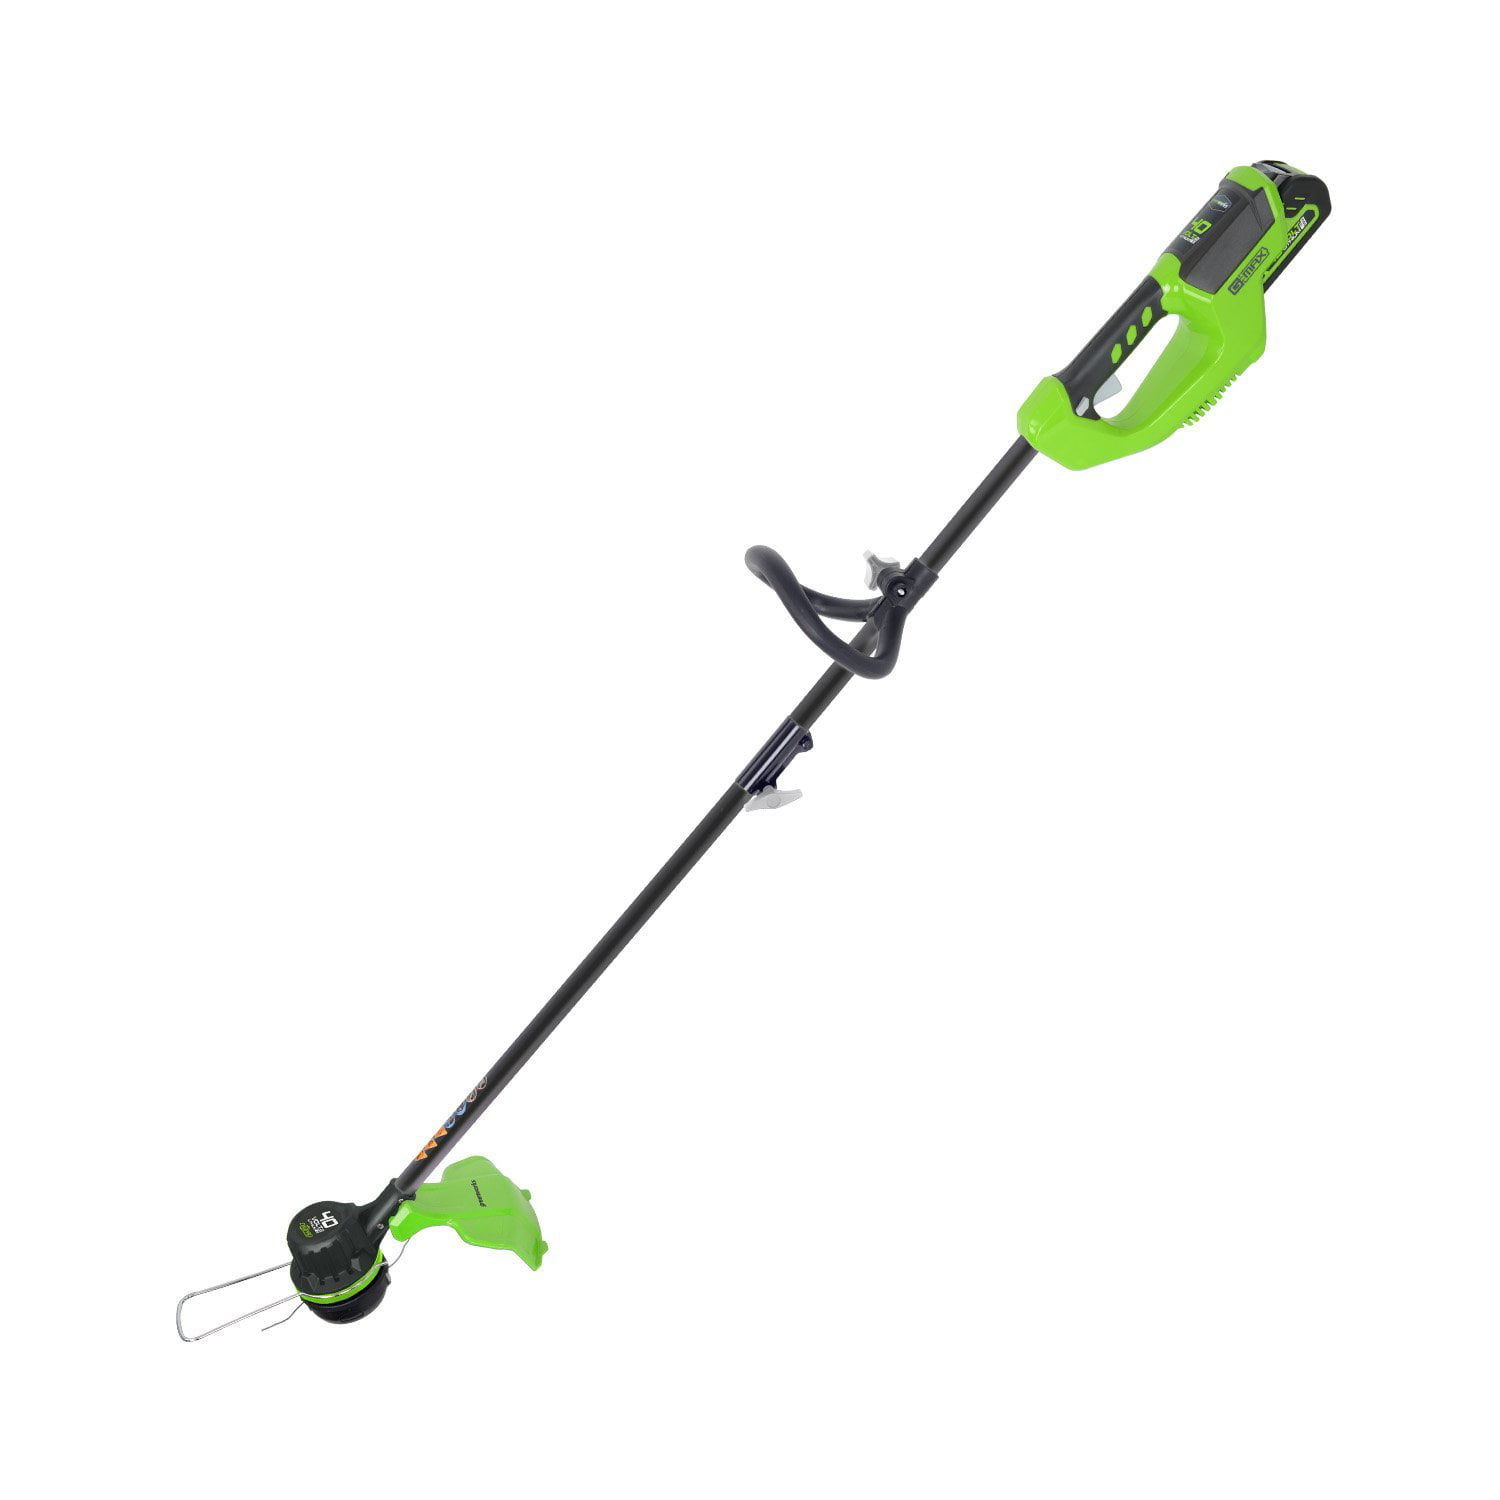 "Greenworks 14"" 40V Brushless String Trimmer, Battery Not Included ST40L00 by Sunrise Global Marketing, LLC"